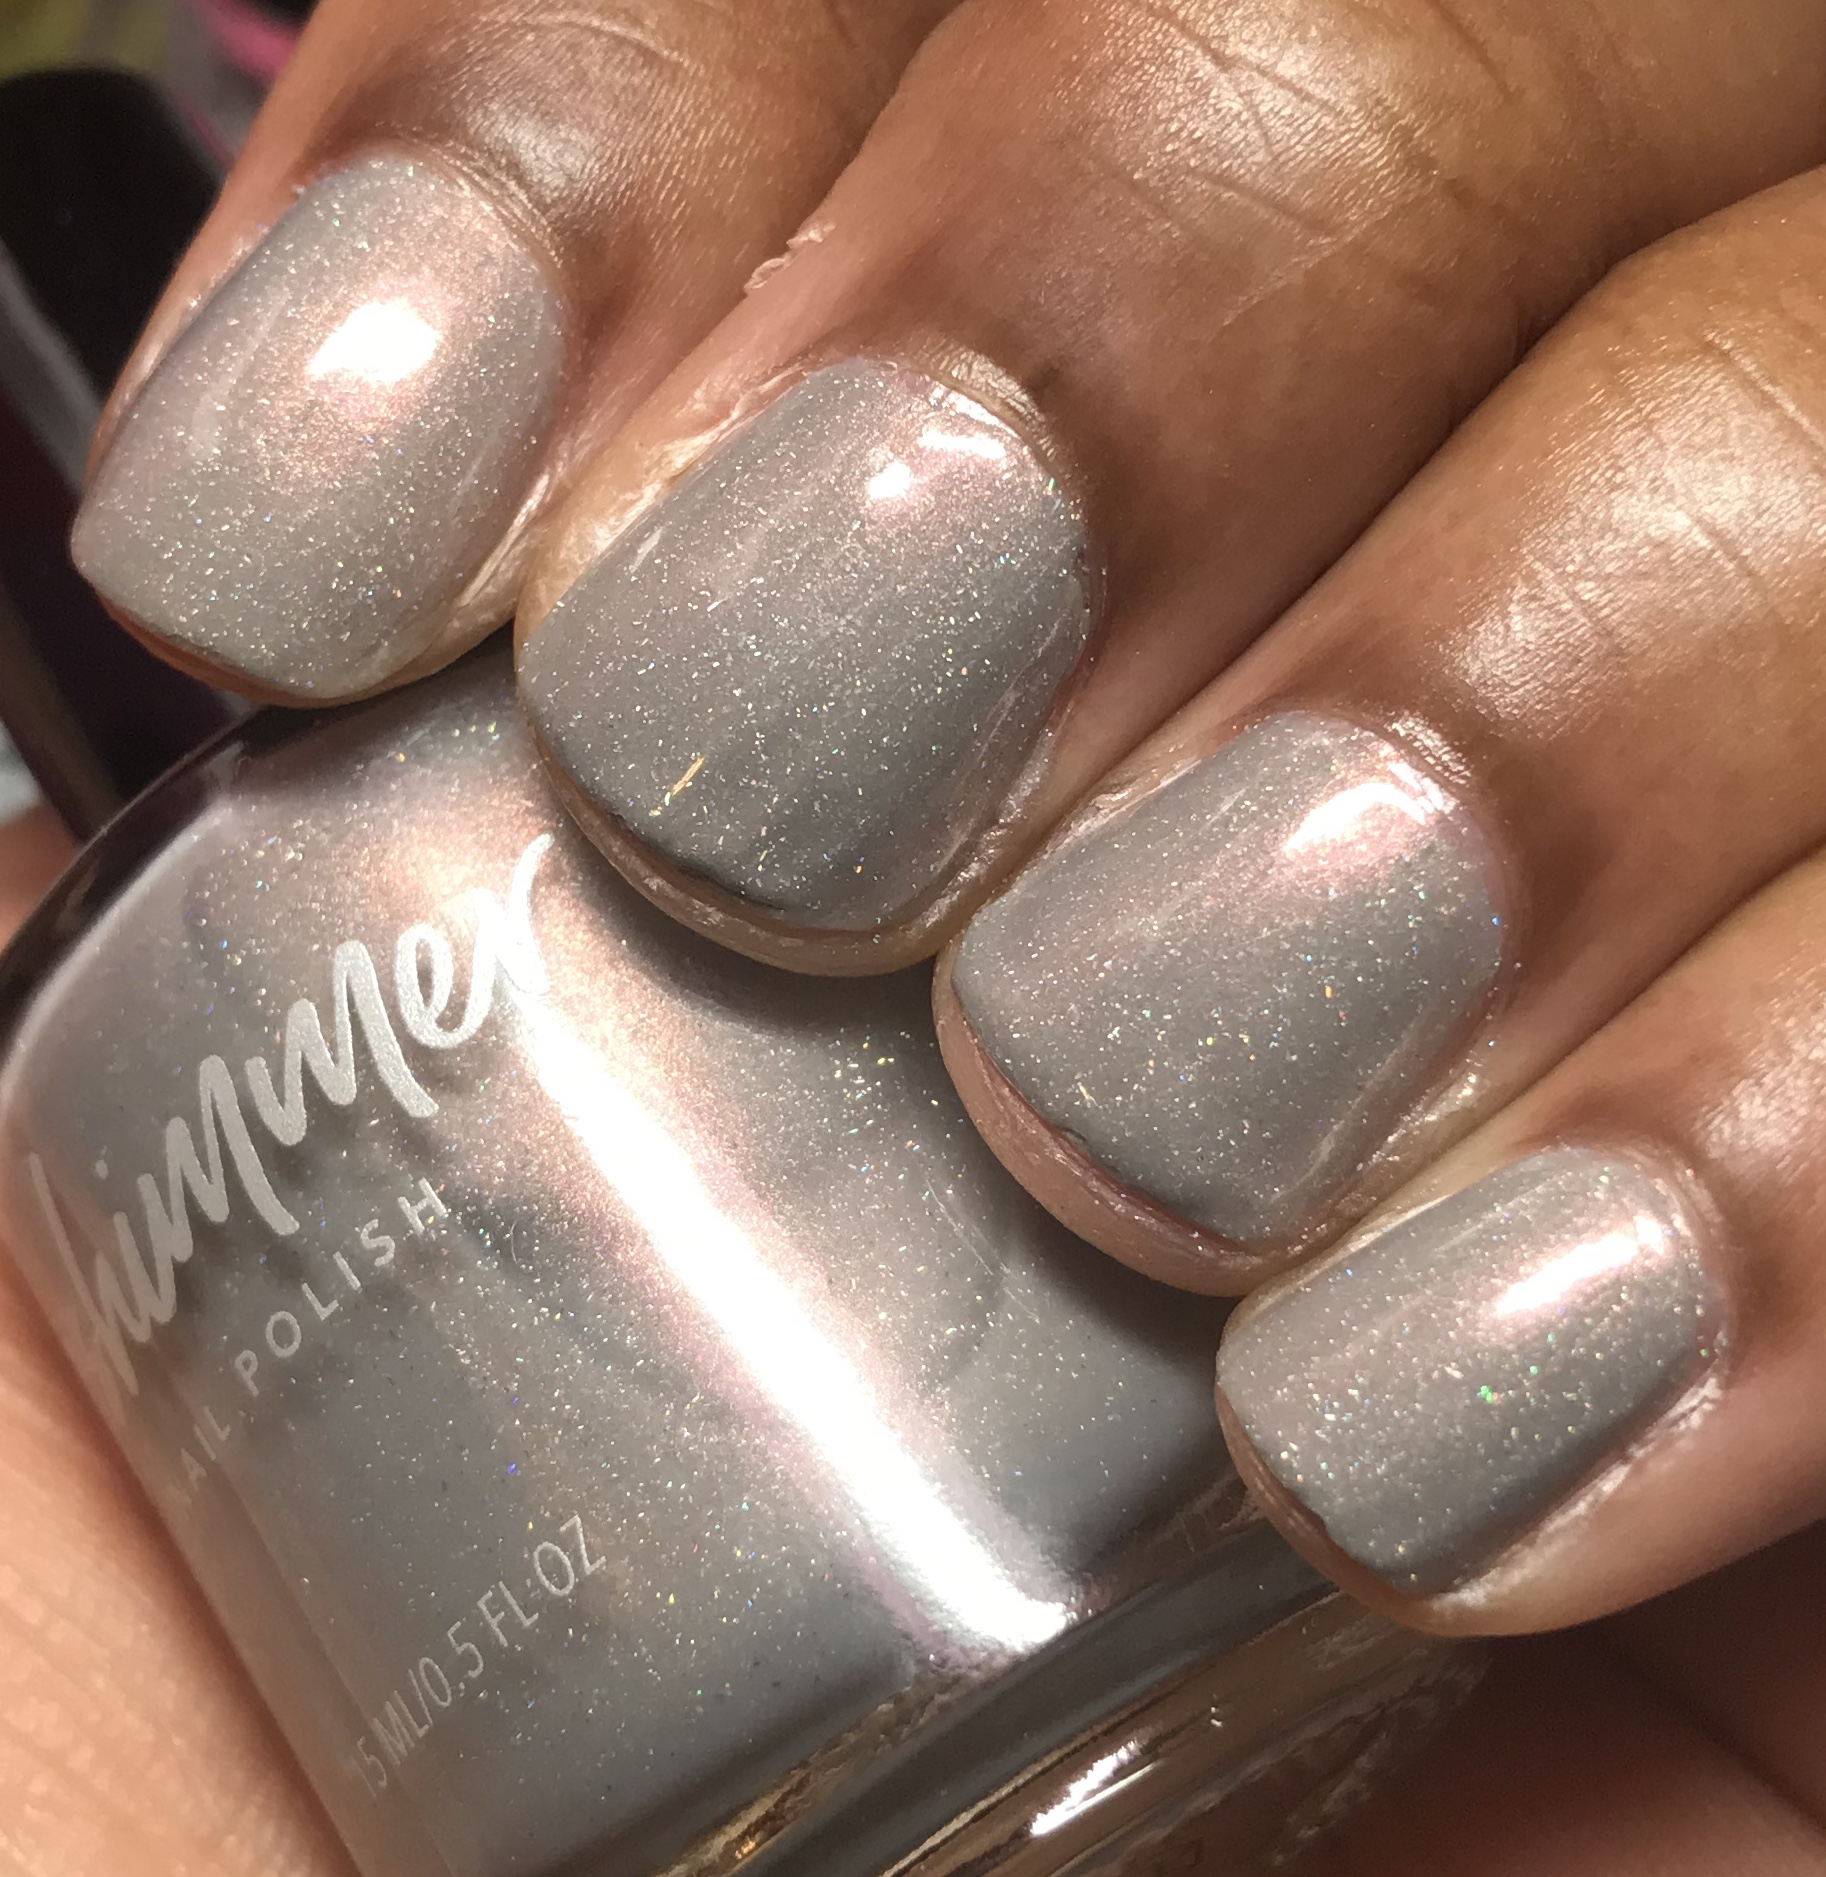 Taupe Notch Shimmer Nail Polish By KBShimmer